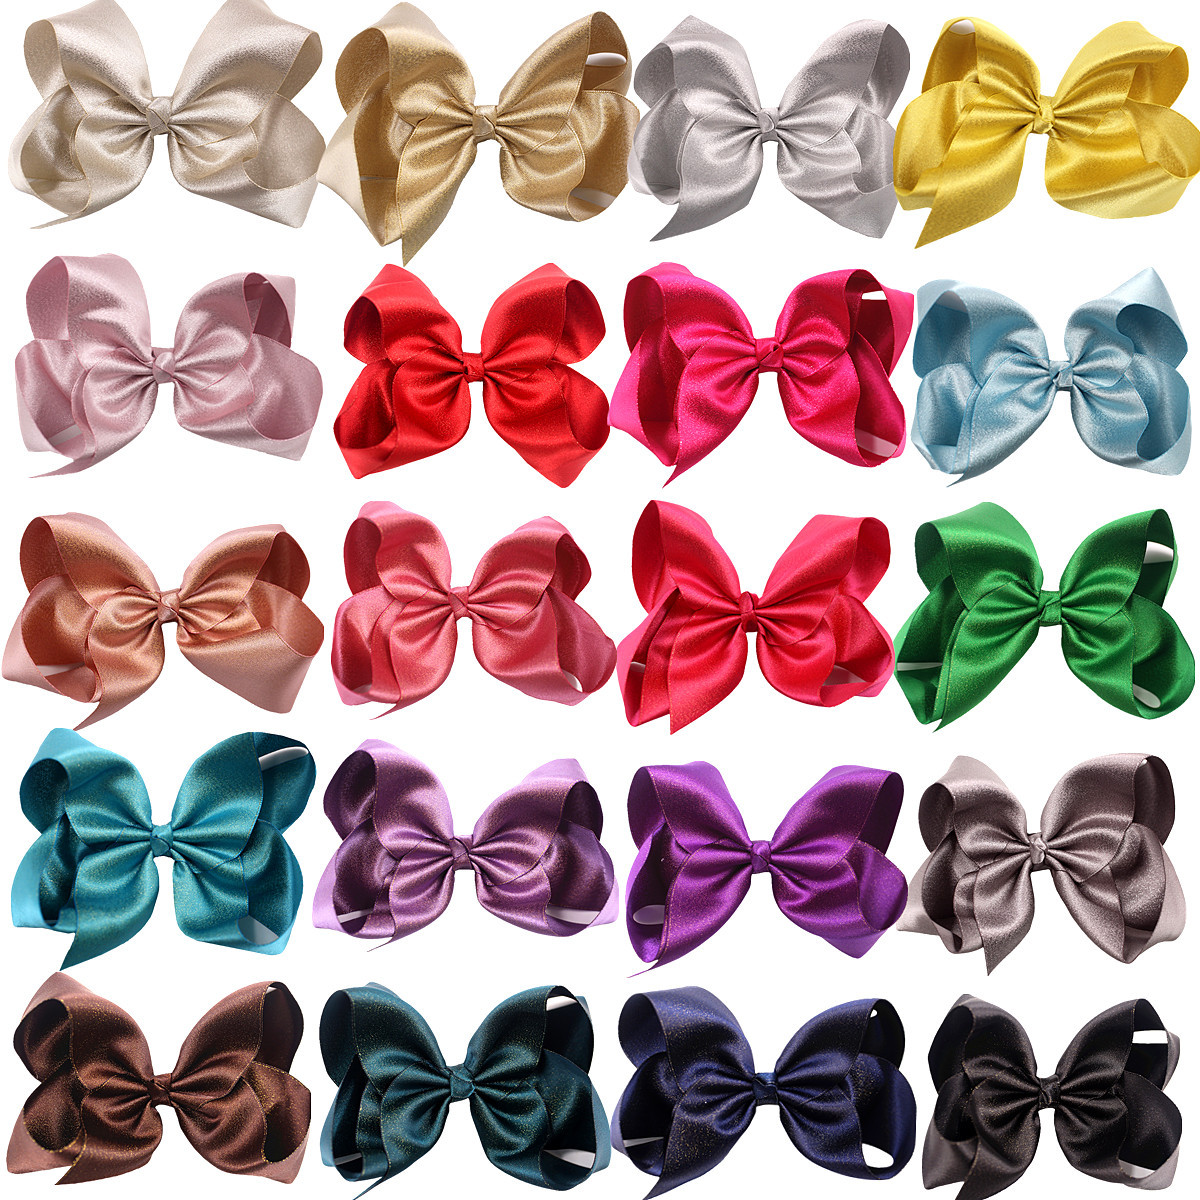 6 Inch Children Bow Barrettes INS Hot Selling Gold And Silver Weft Webbing Bubble Flower Headdress